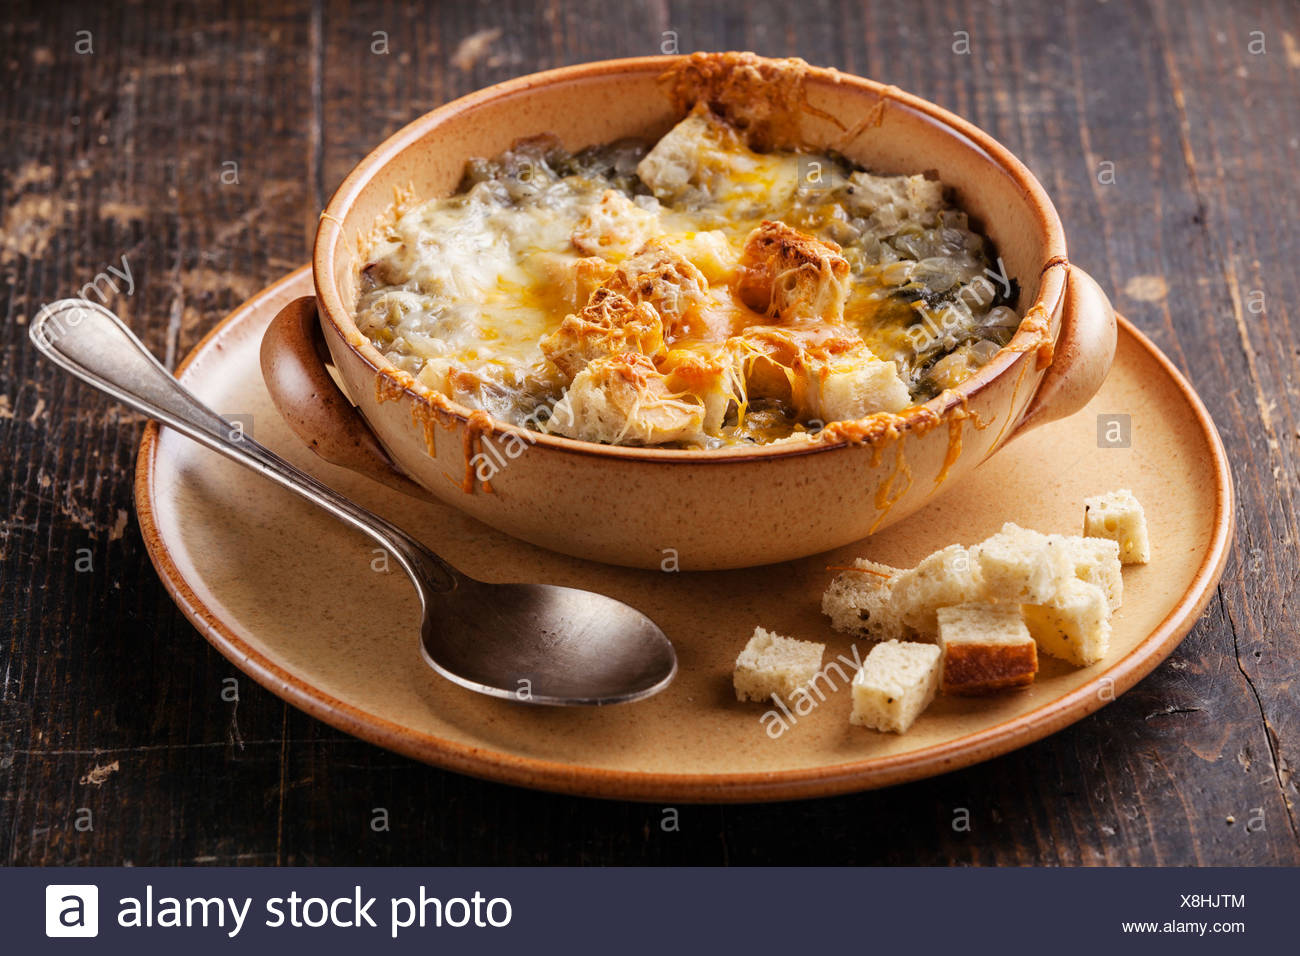 Onion soup with croutons and cheddar cheese - Stock Image